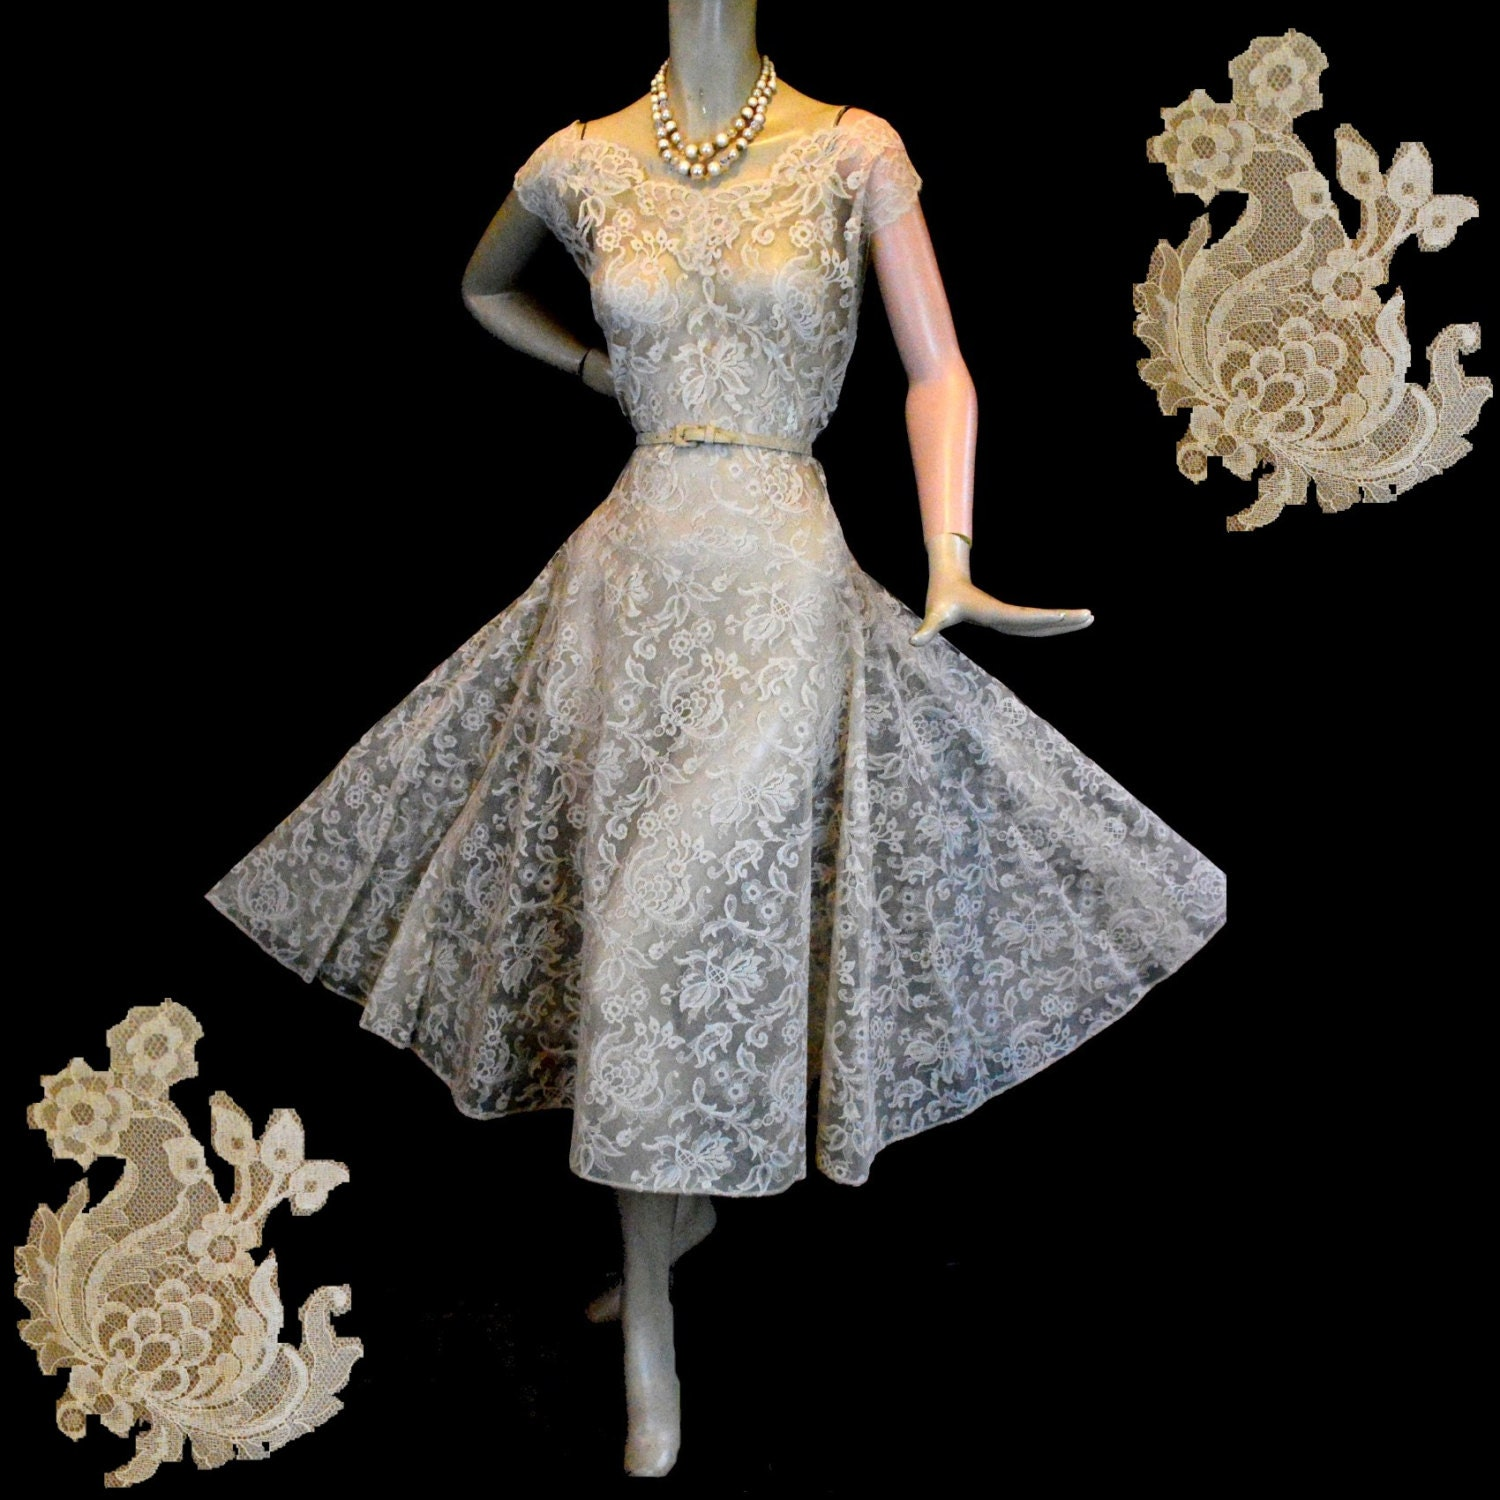 Champagne Vintage Wedding Dresses: Vintage 50s Champagne Lace Wedding Dress L By Labellevintage